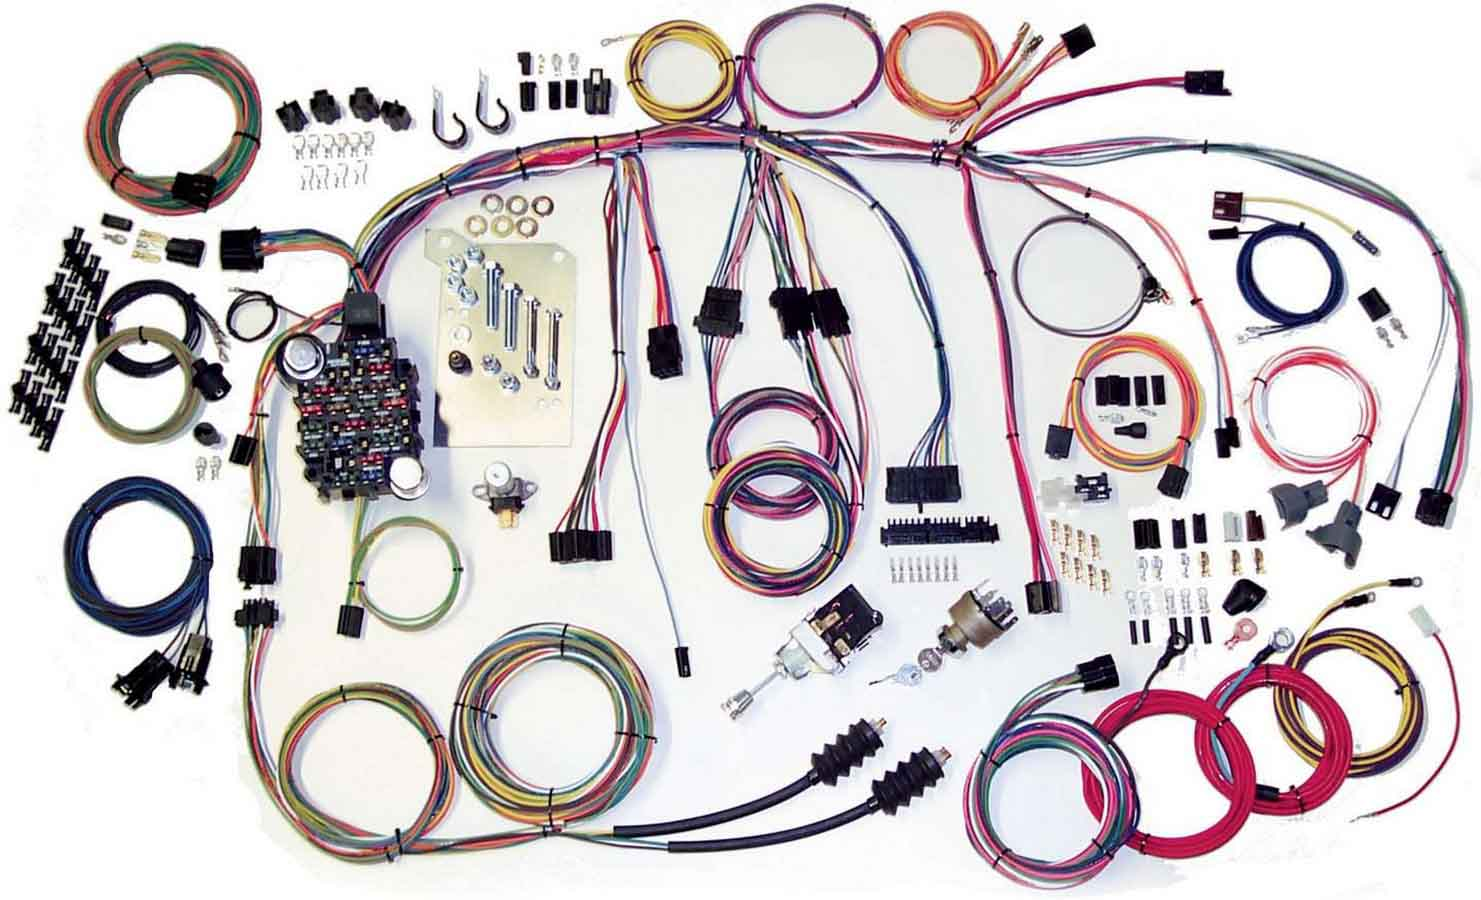 66 Chevy Truck Wiring Harness Library 1950 Ford Car Wire 500560